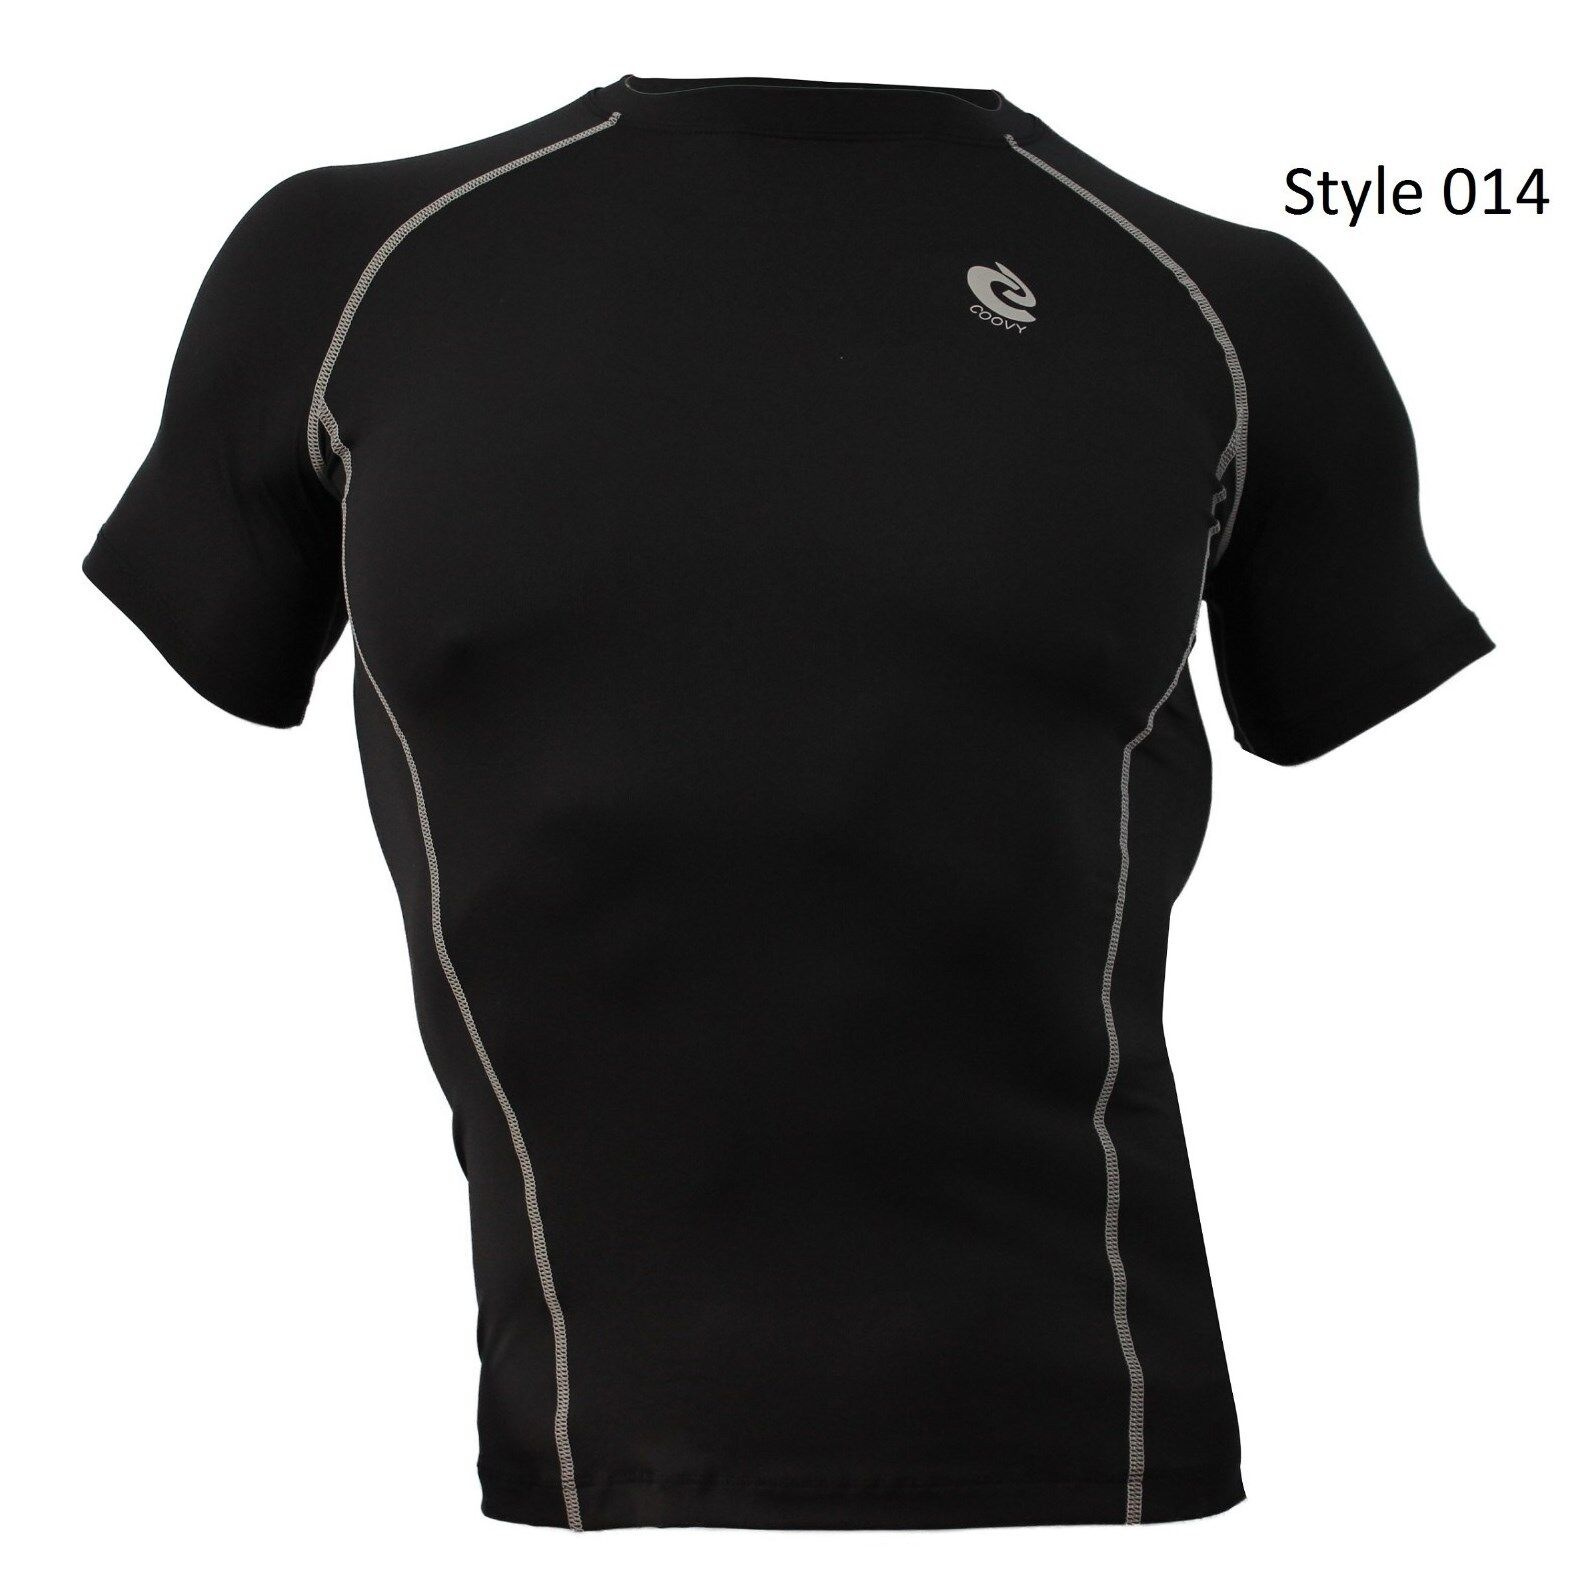 014 Black Short Sleeve Shirt